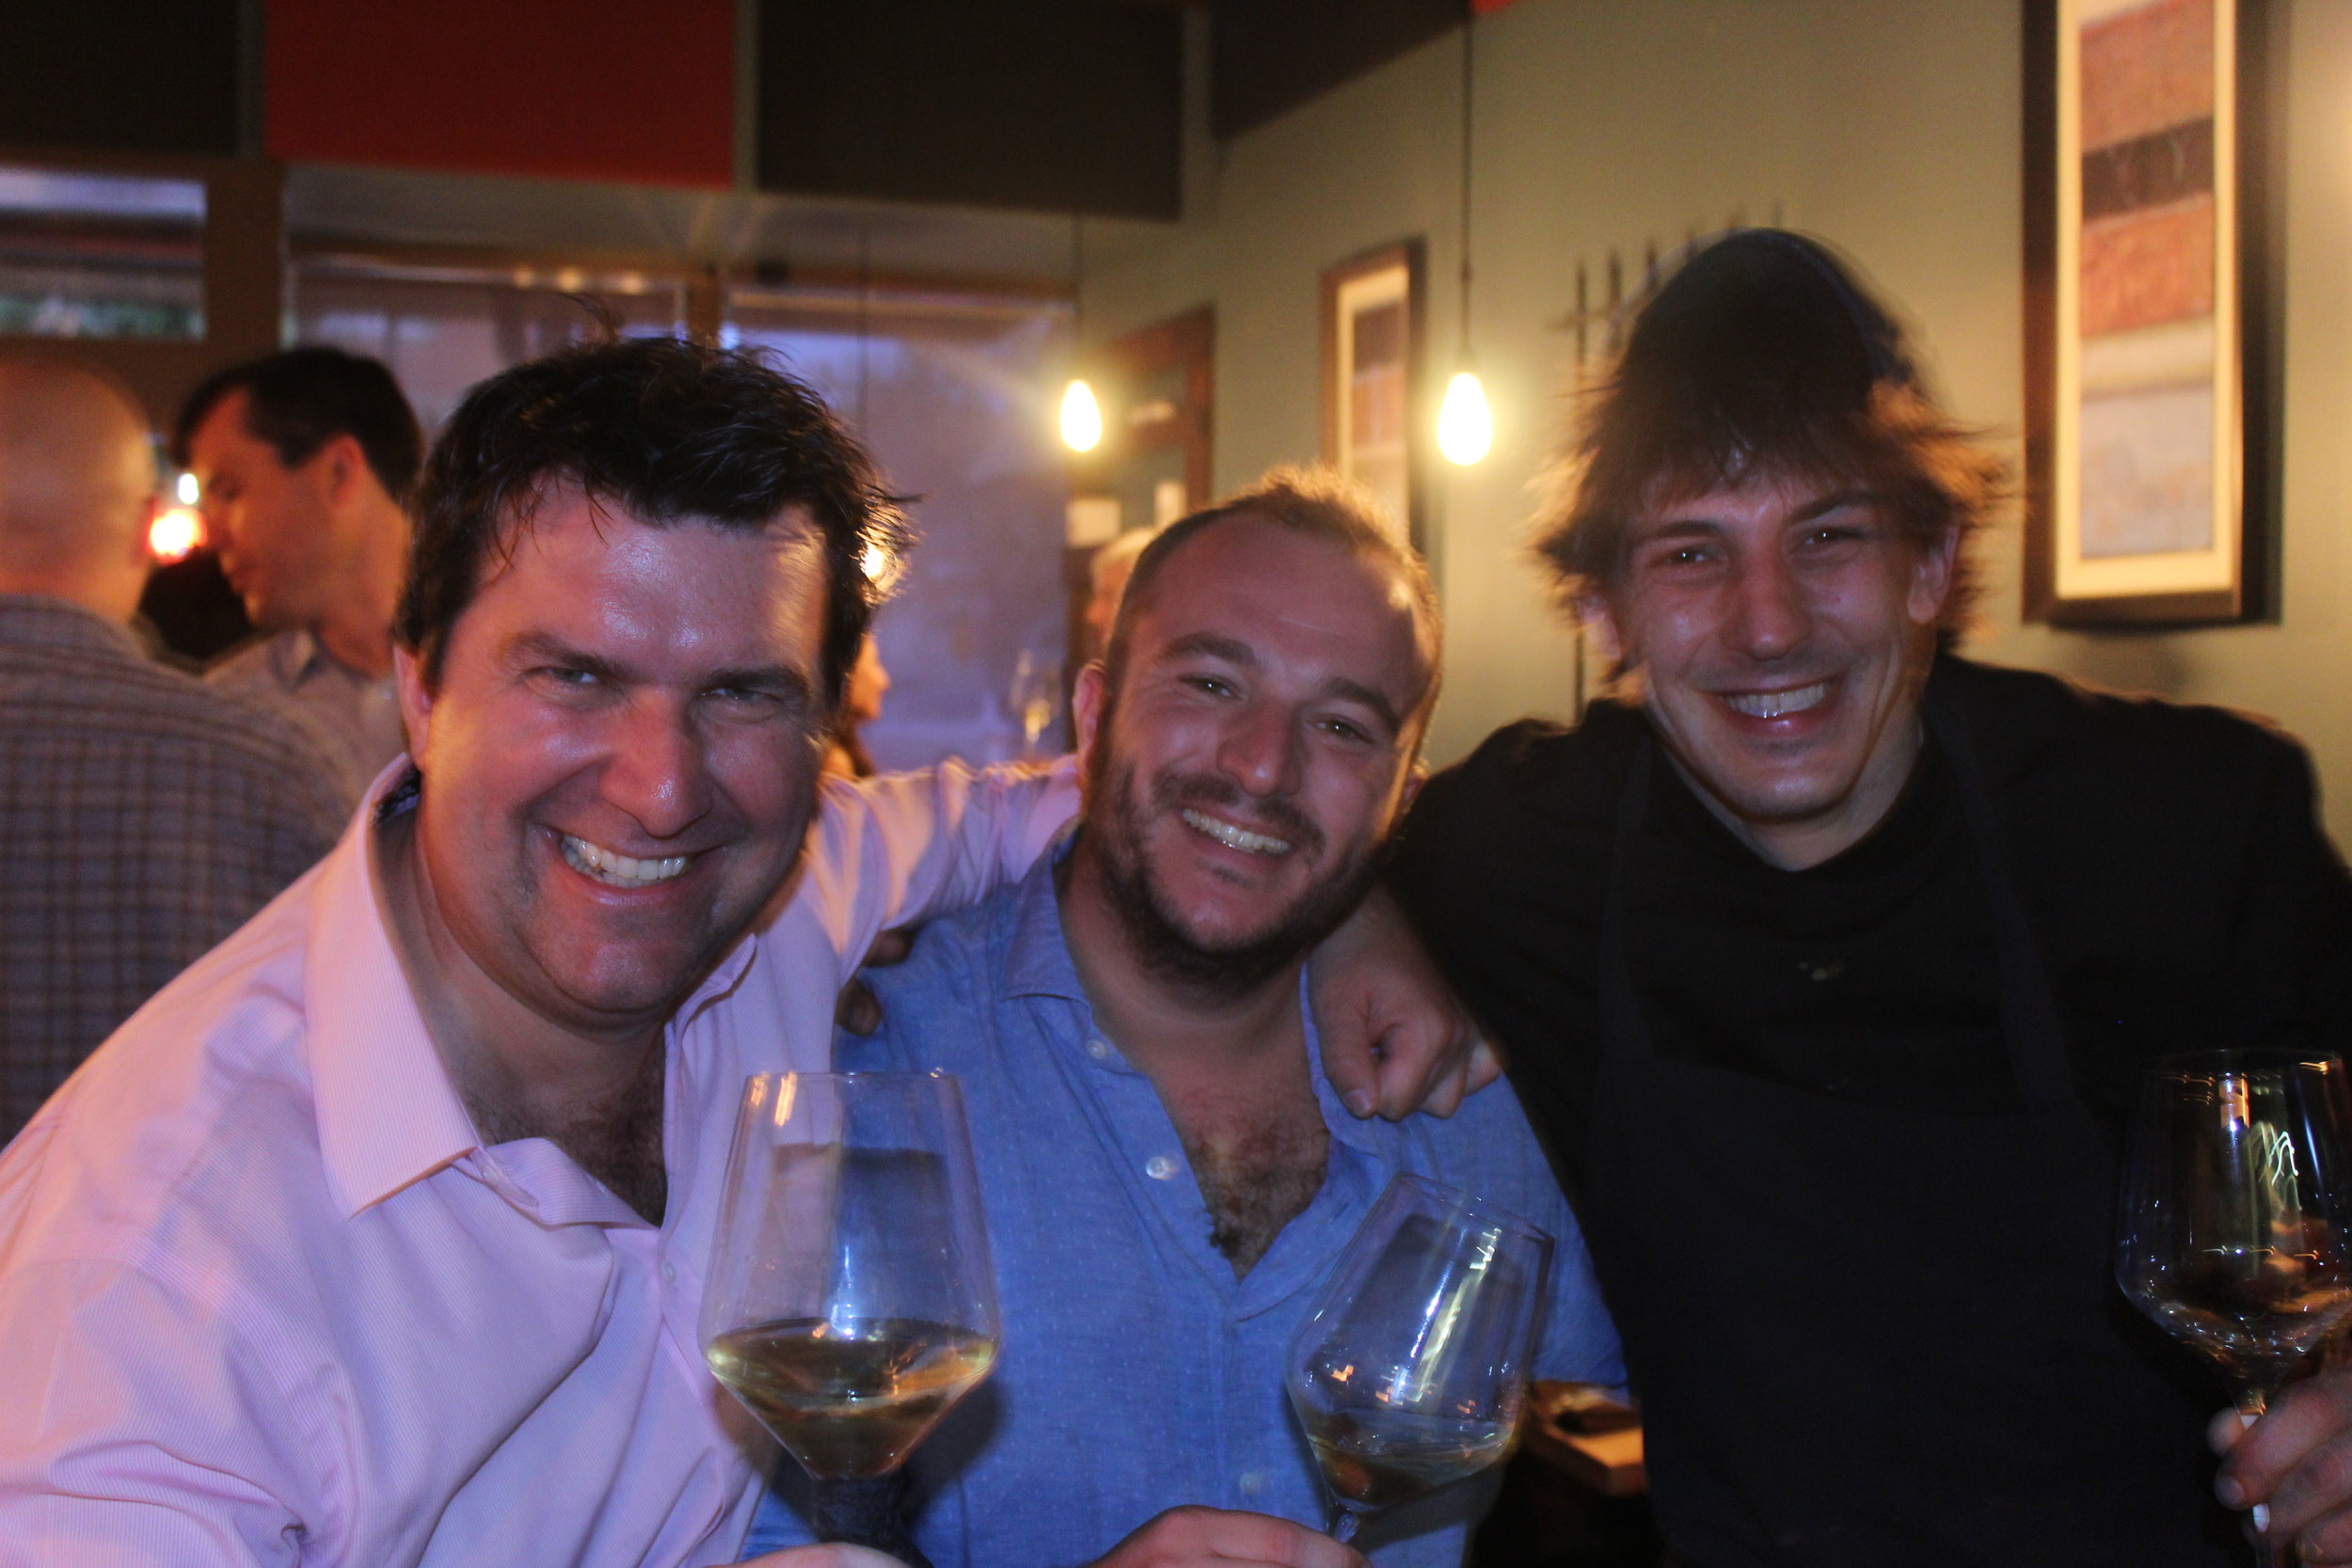 wine merchant, wine producer, and chef together picture